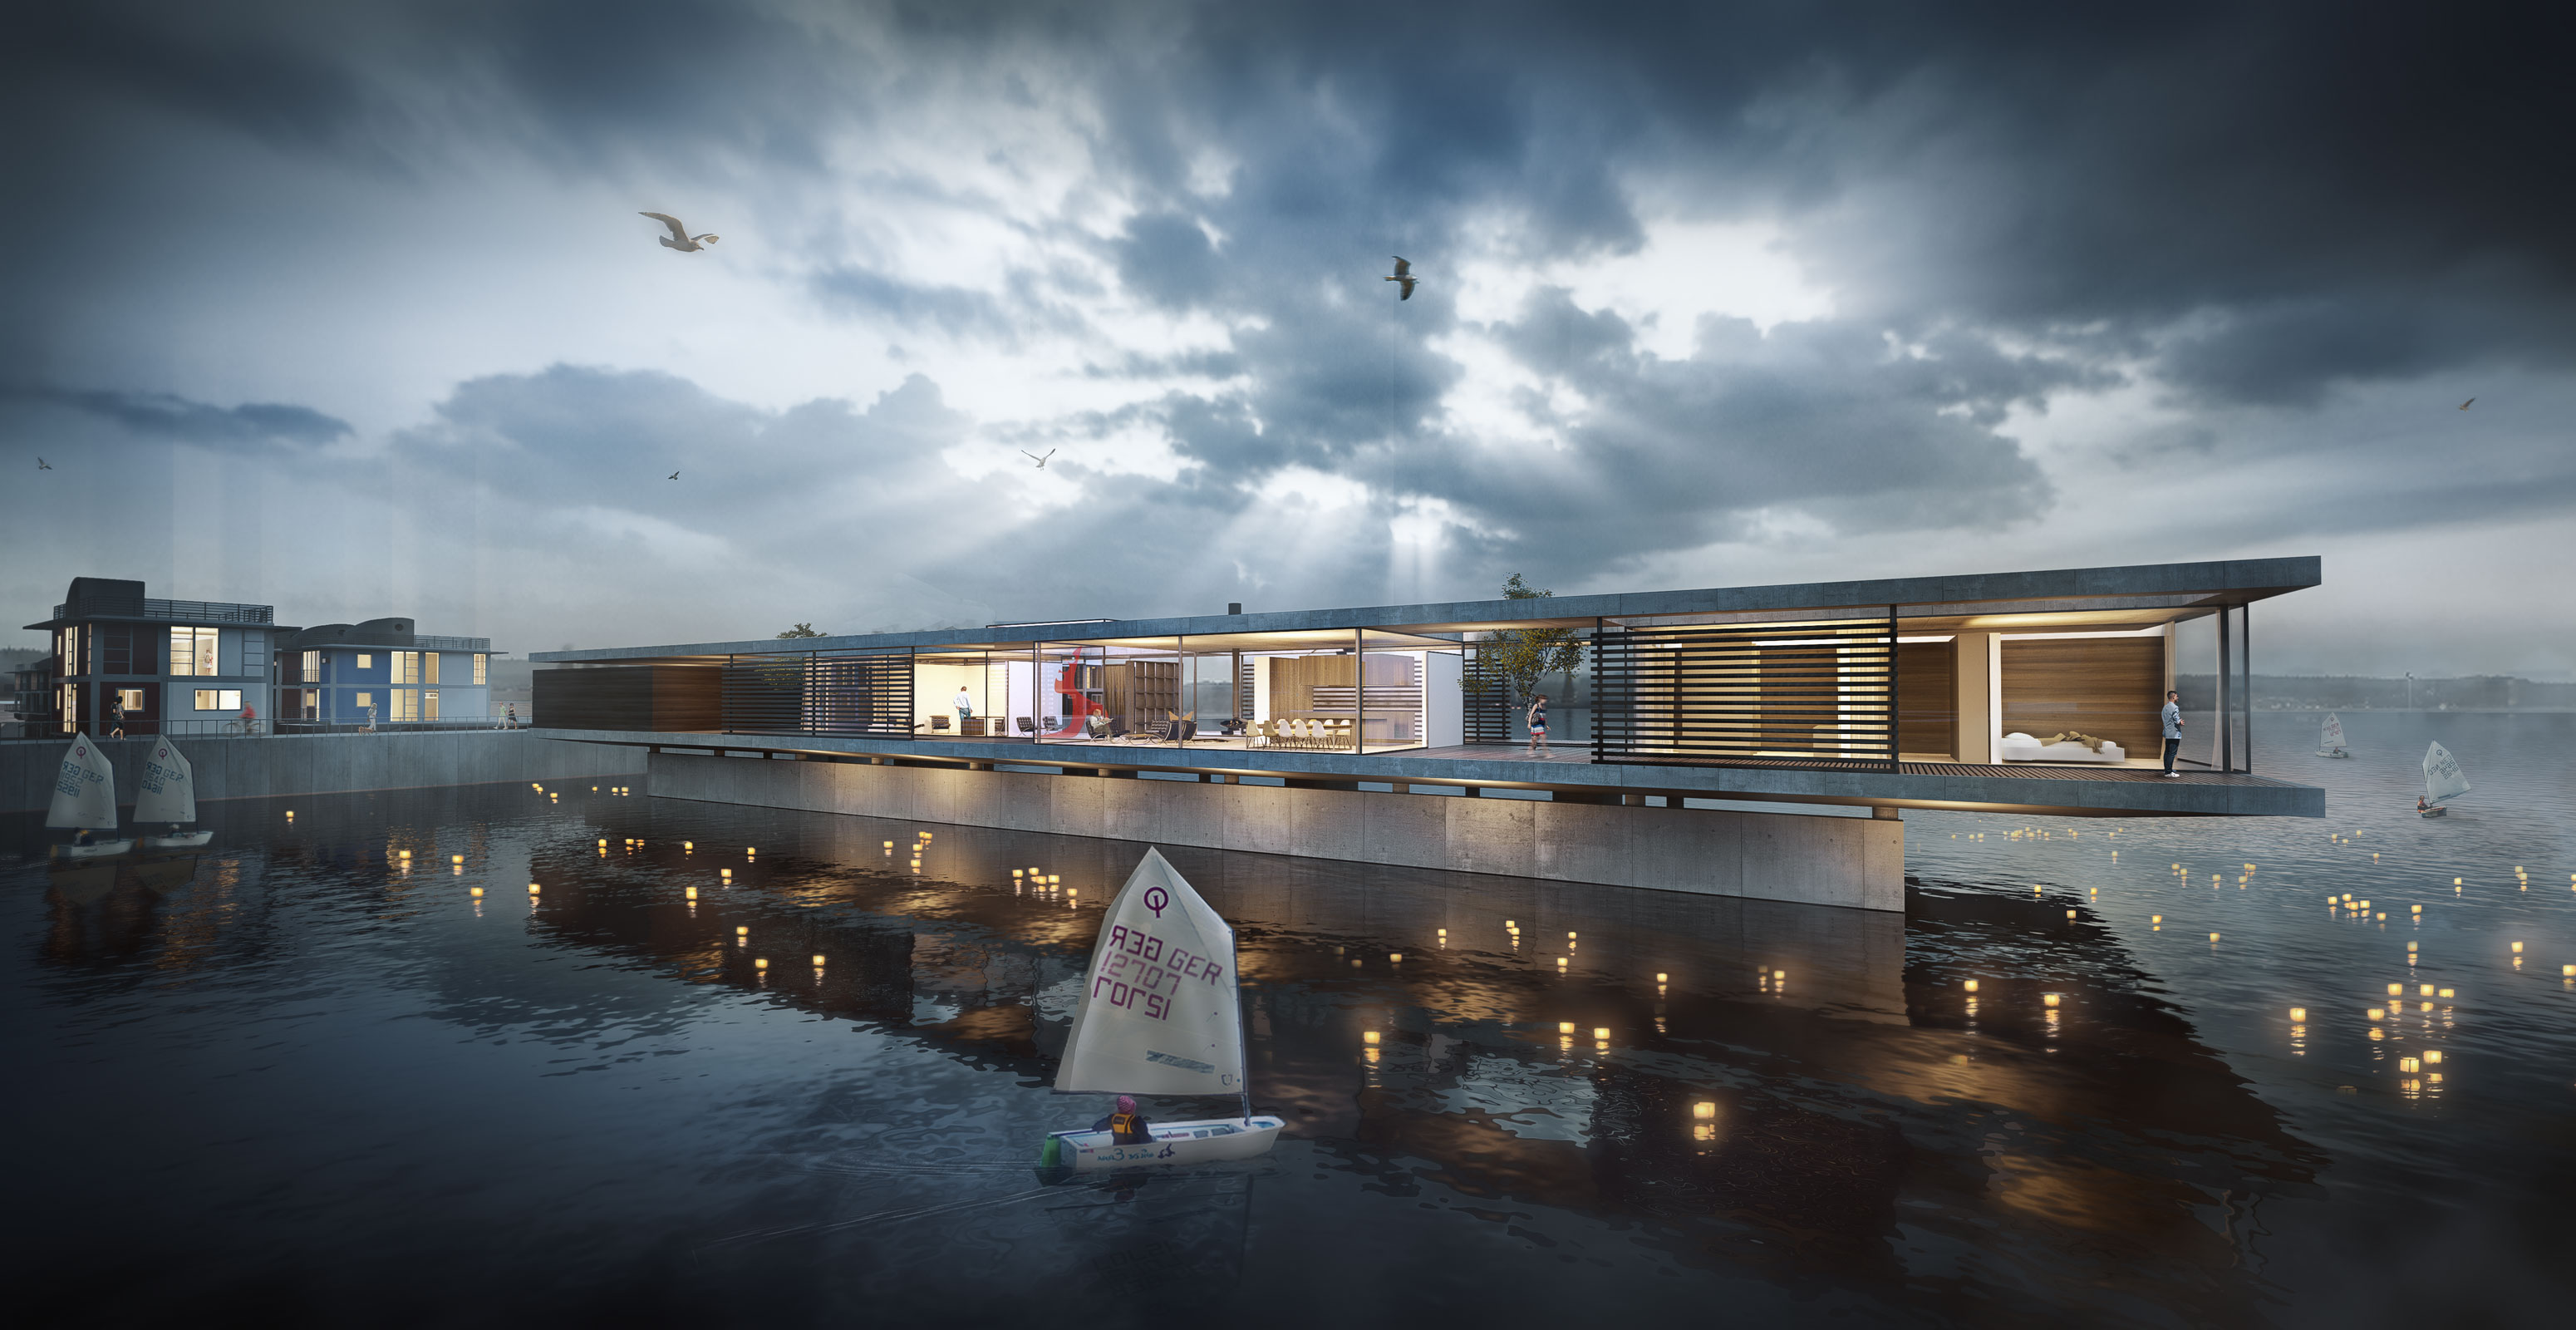 Architecture visualization flensburg house - 3d architectural visualization ...